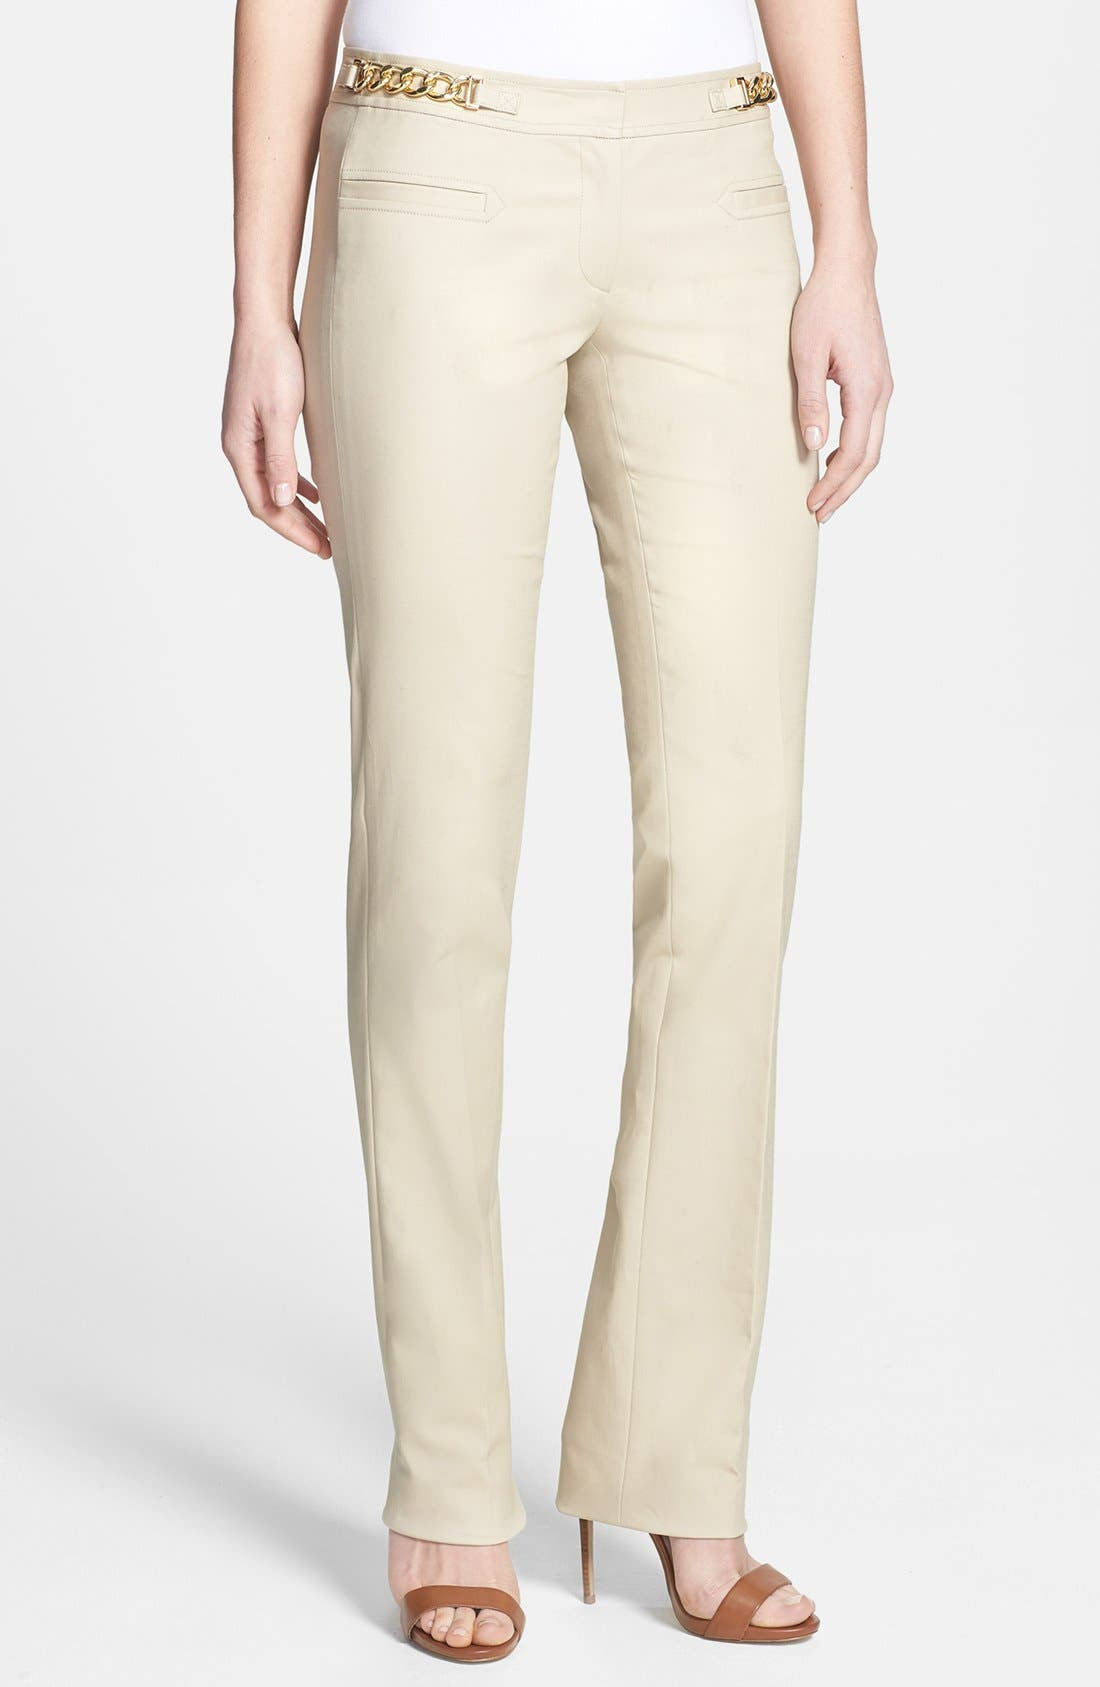 Alternate Image 1 Selected - MICHAEL Michael Kors 'Sexy' Hardware Detail Stretch Cotton Pants